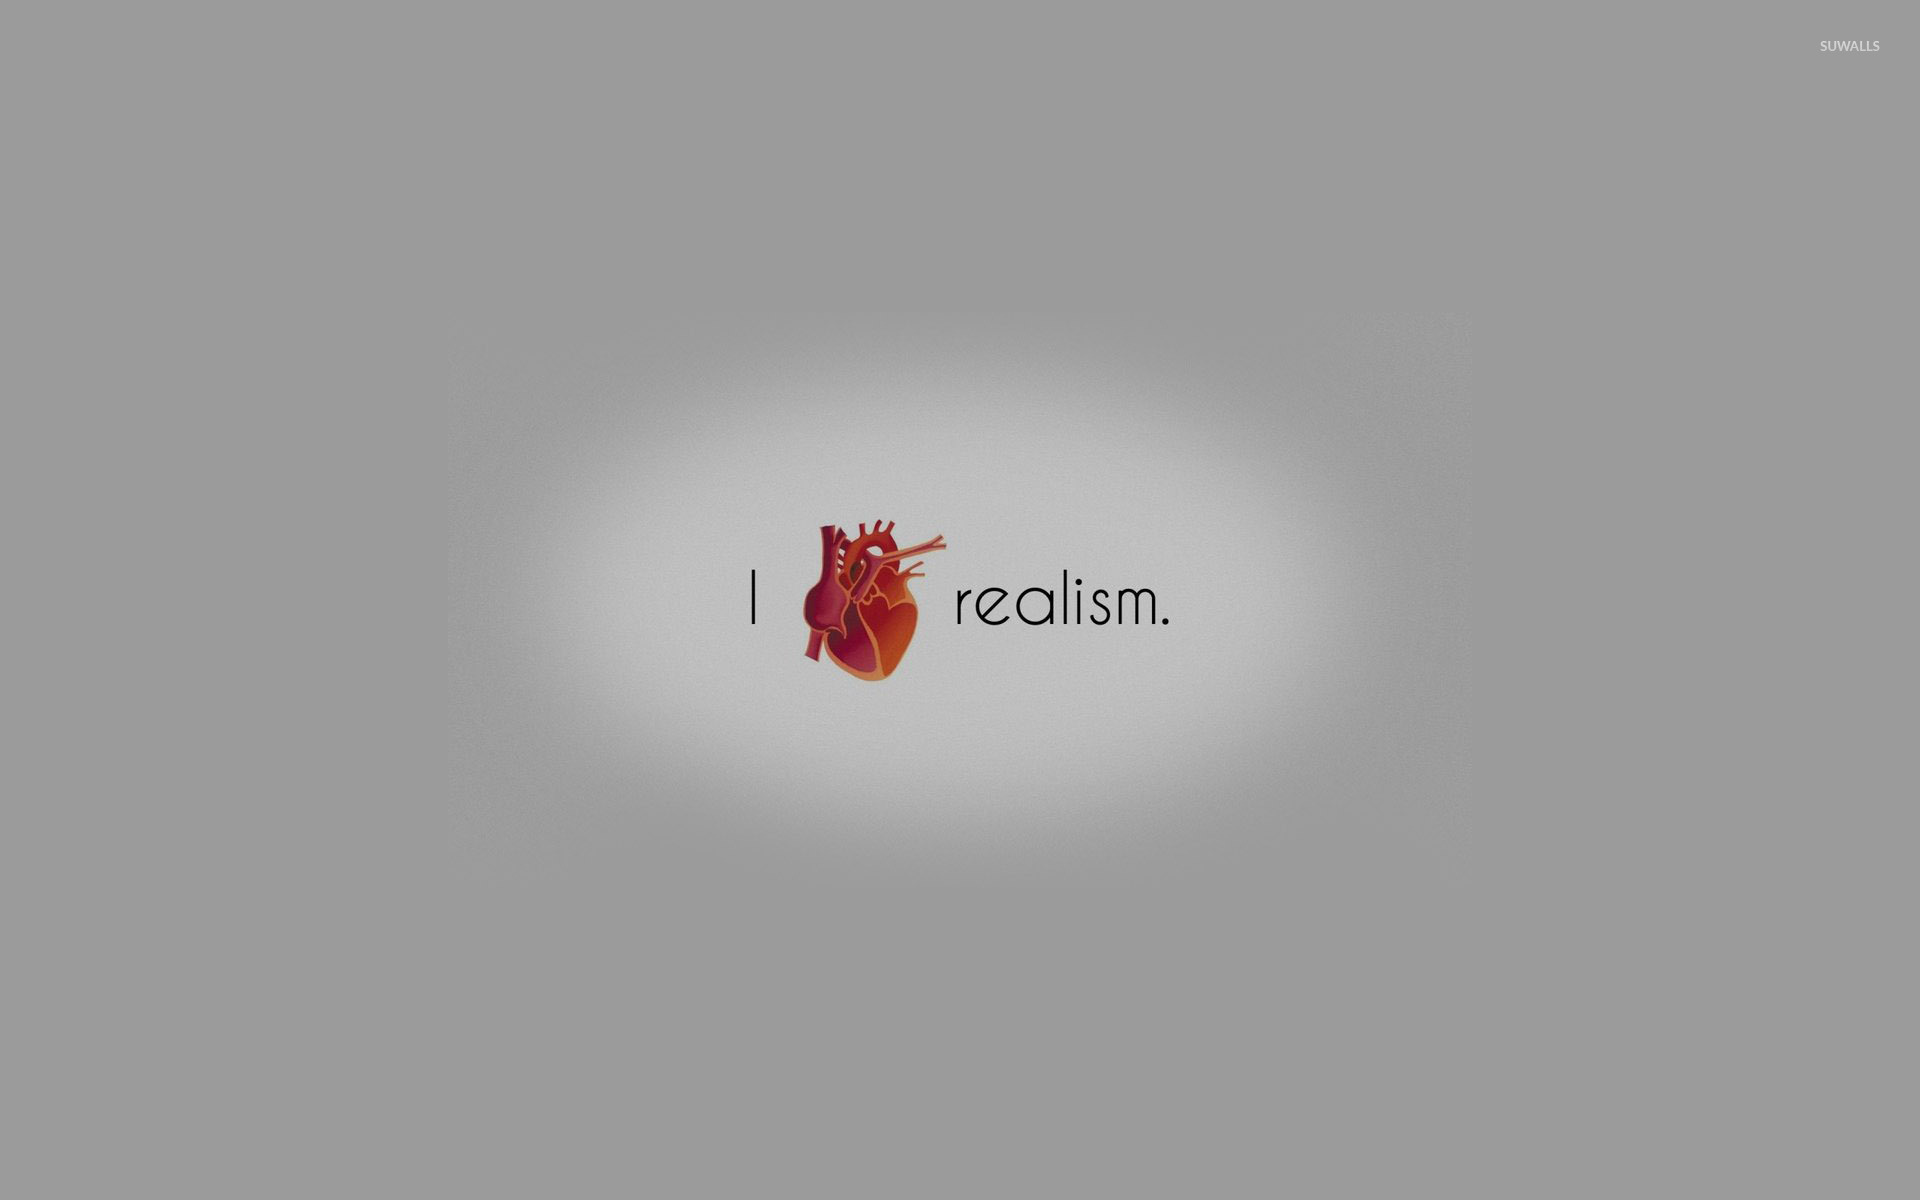 Realism wallpaper   Typography wallpapers   27564 1920x1200